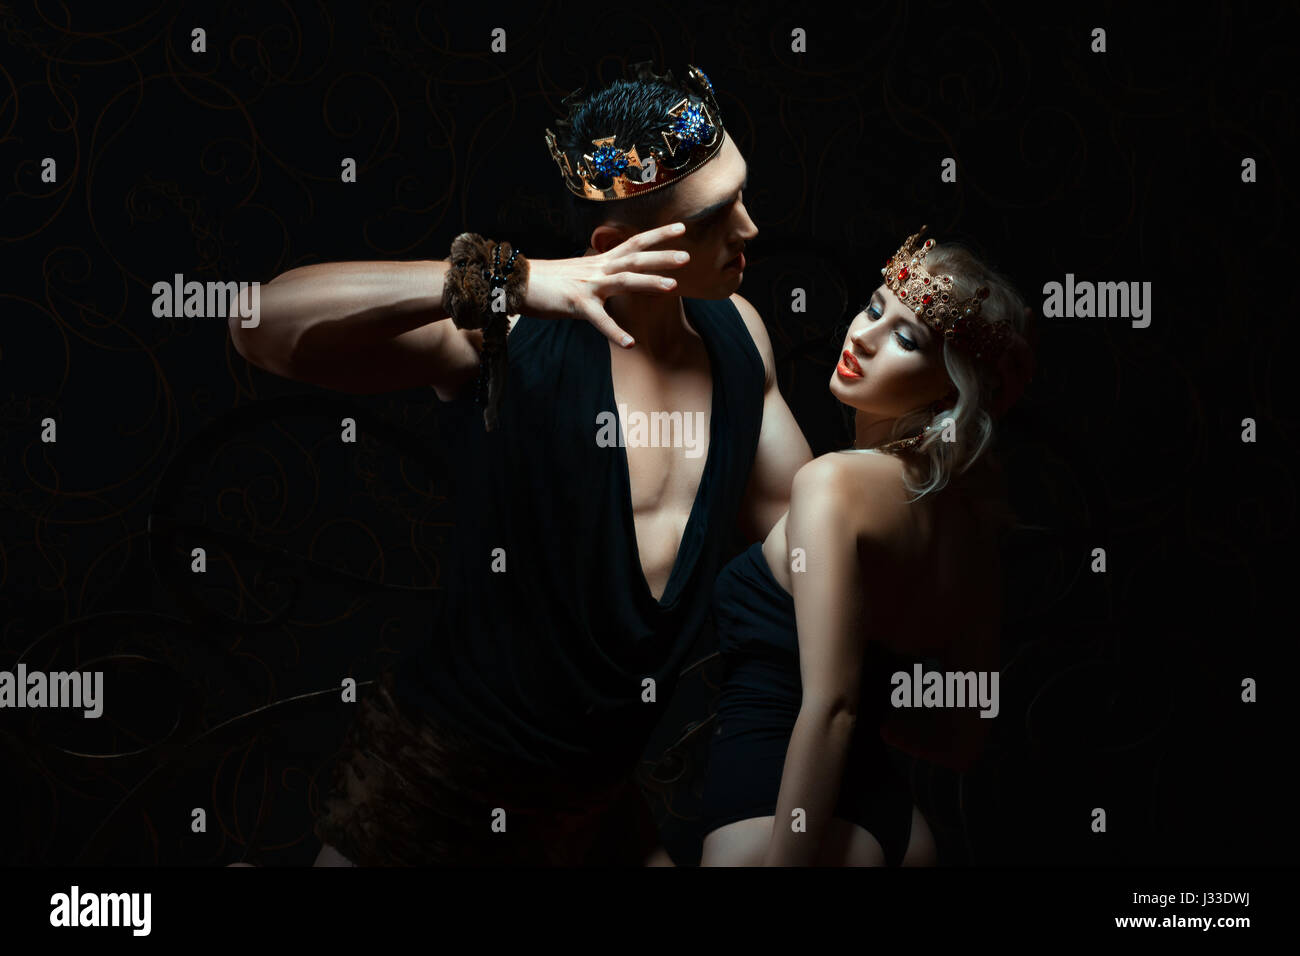 Man holds girl passionately. They play in the Kings. - Stock Image